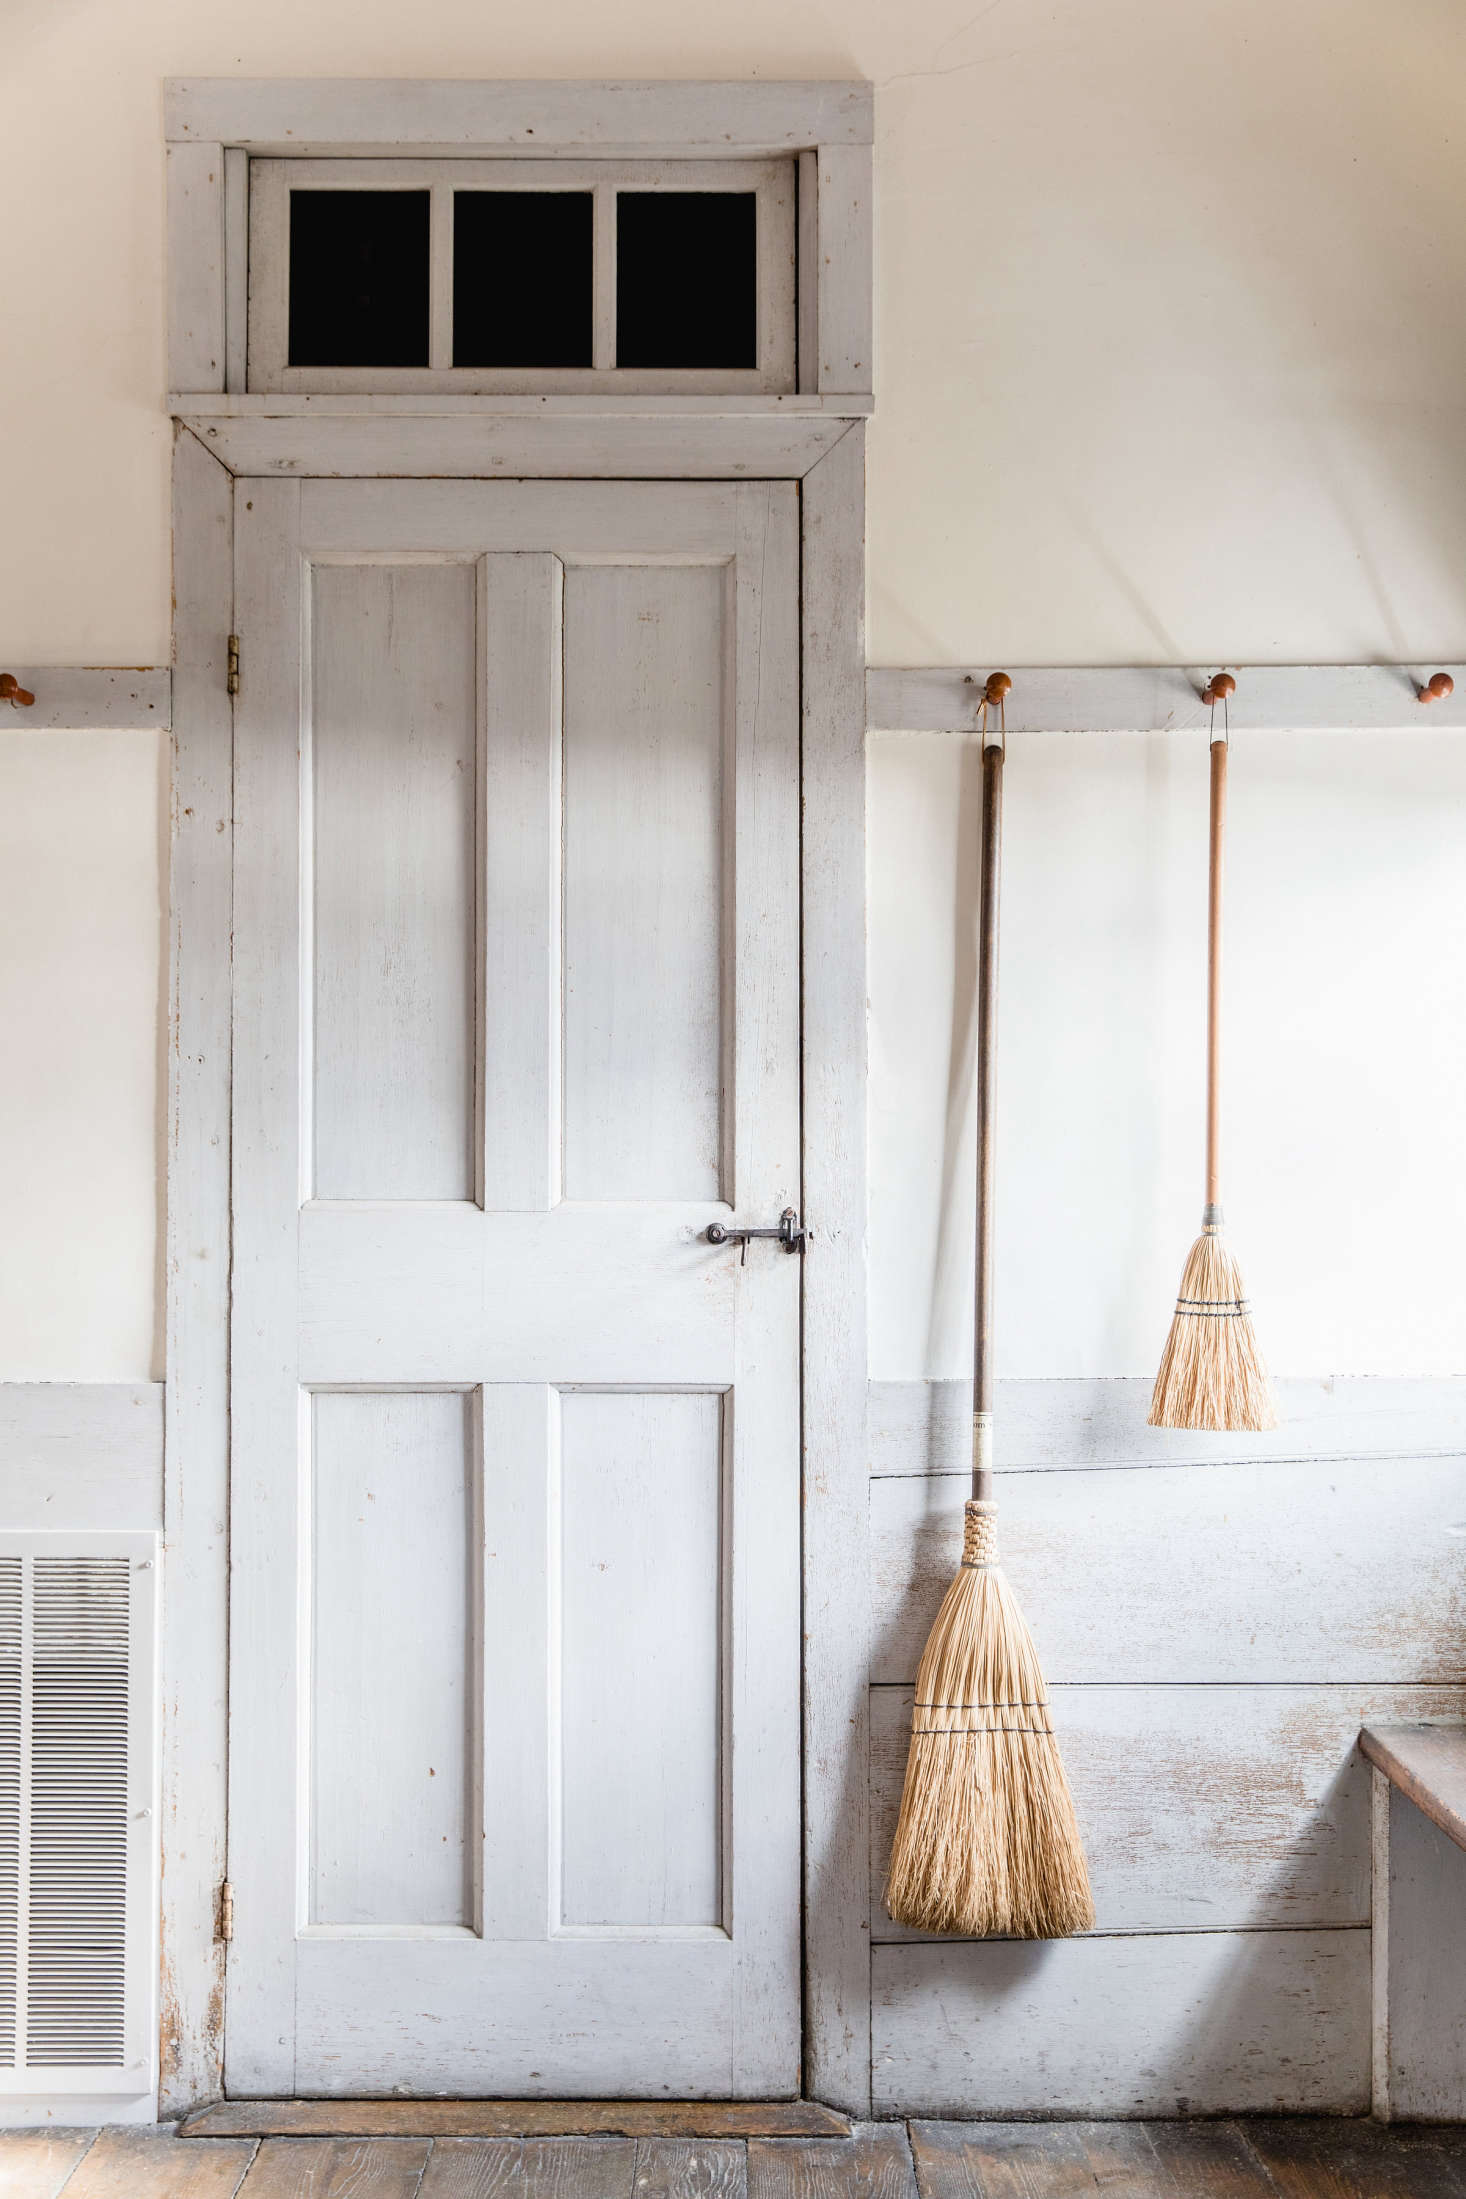 Peg rails keeps brooms at the ready in a Shaker schoolhouse. See In the Dwelling House: 16 Design Ideas to Steal from the Shakers.